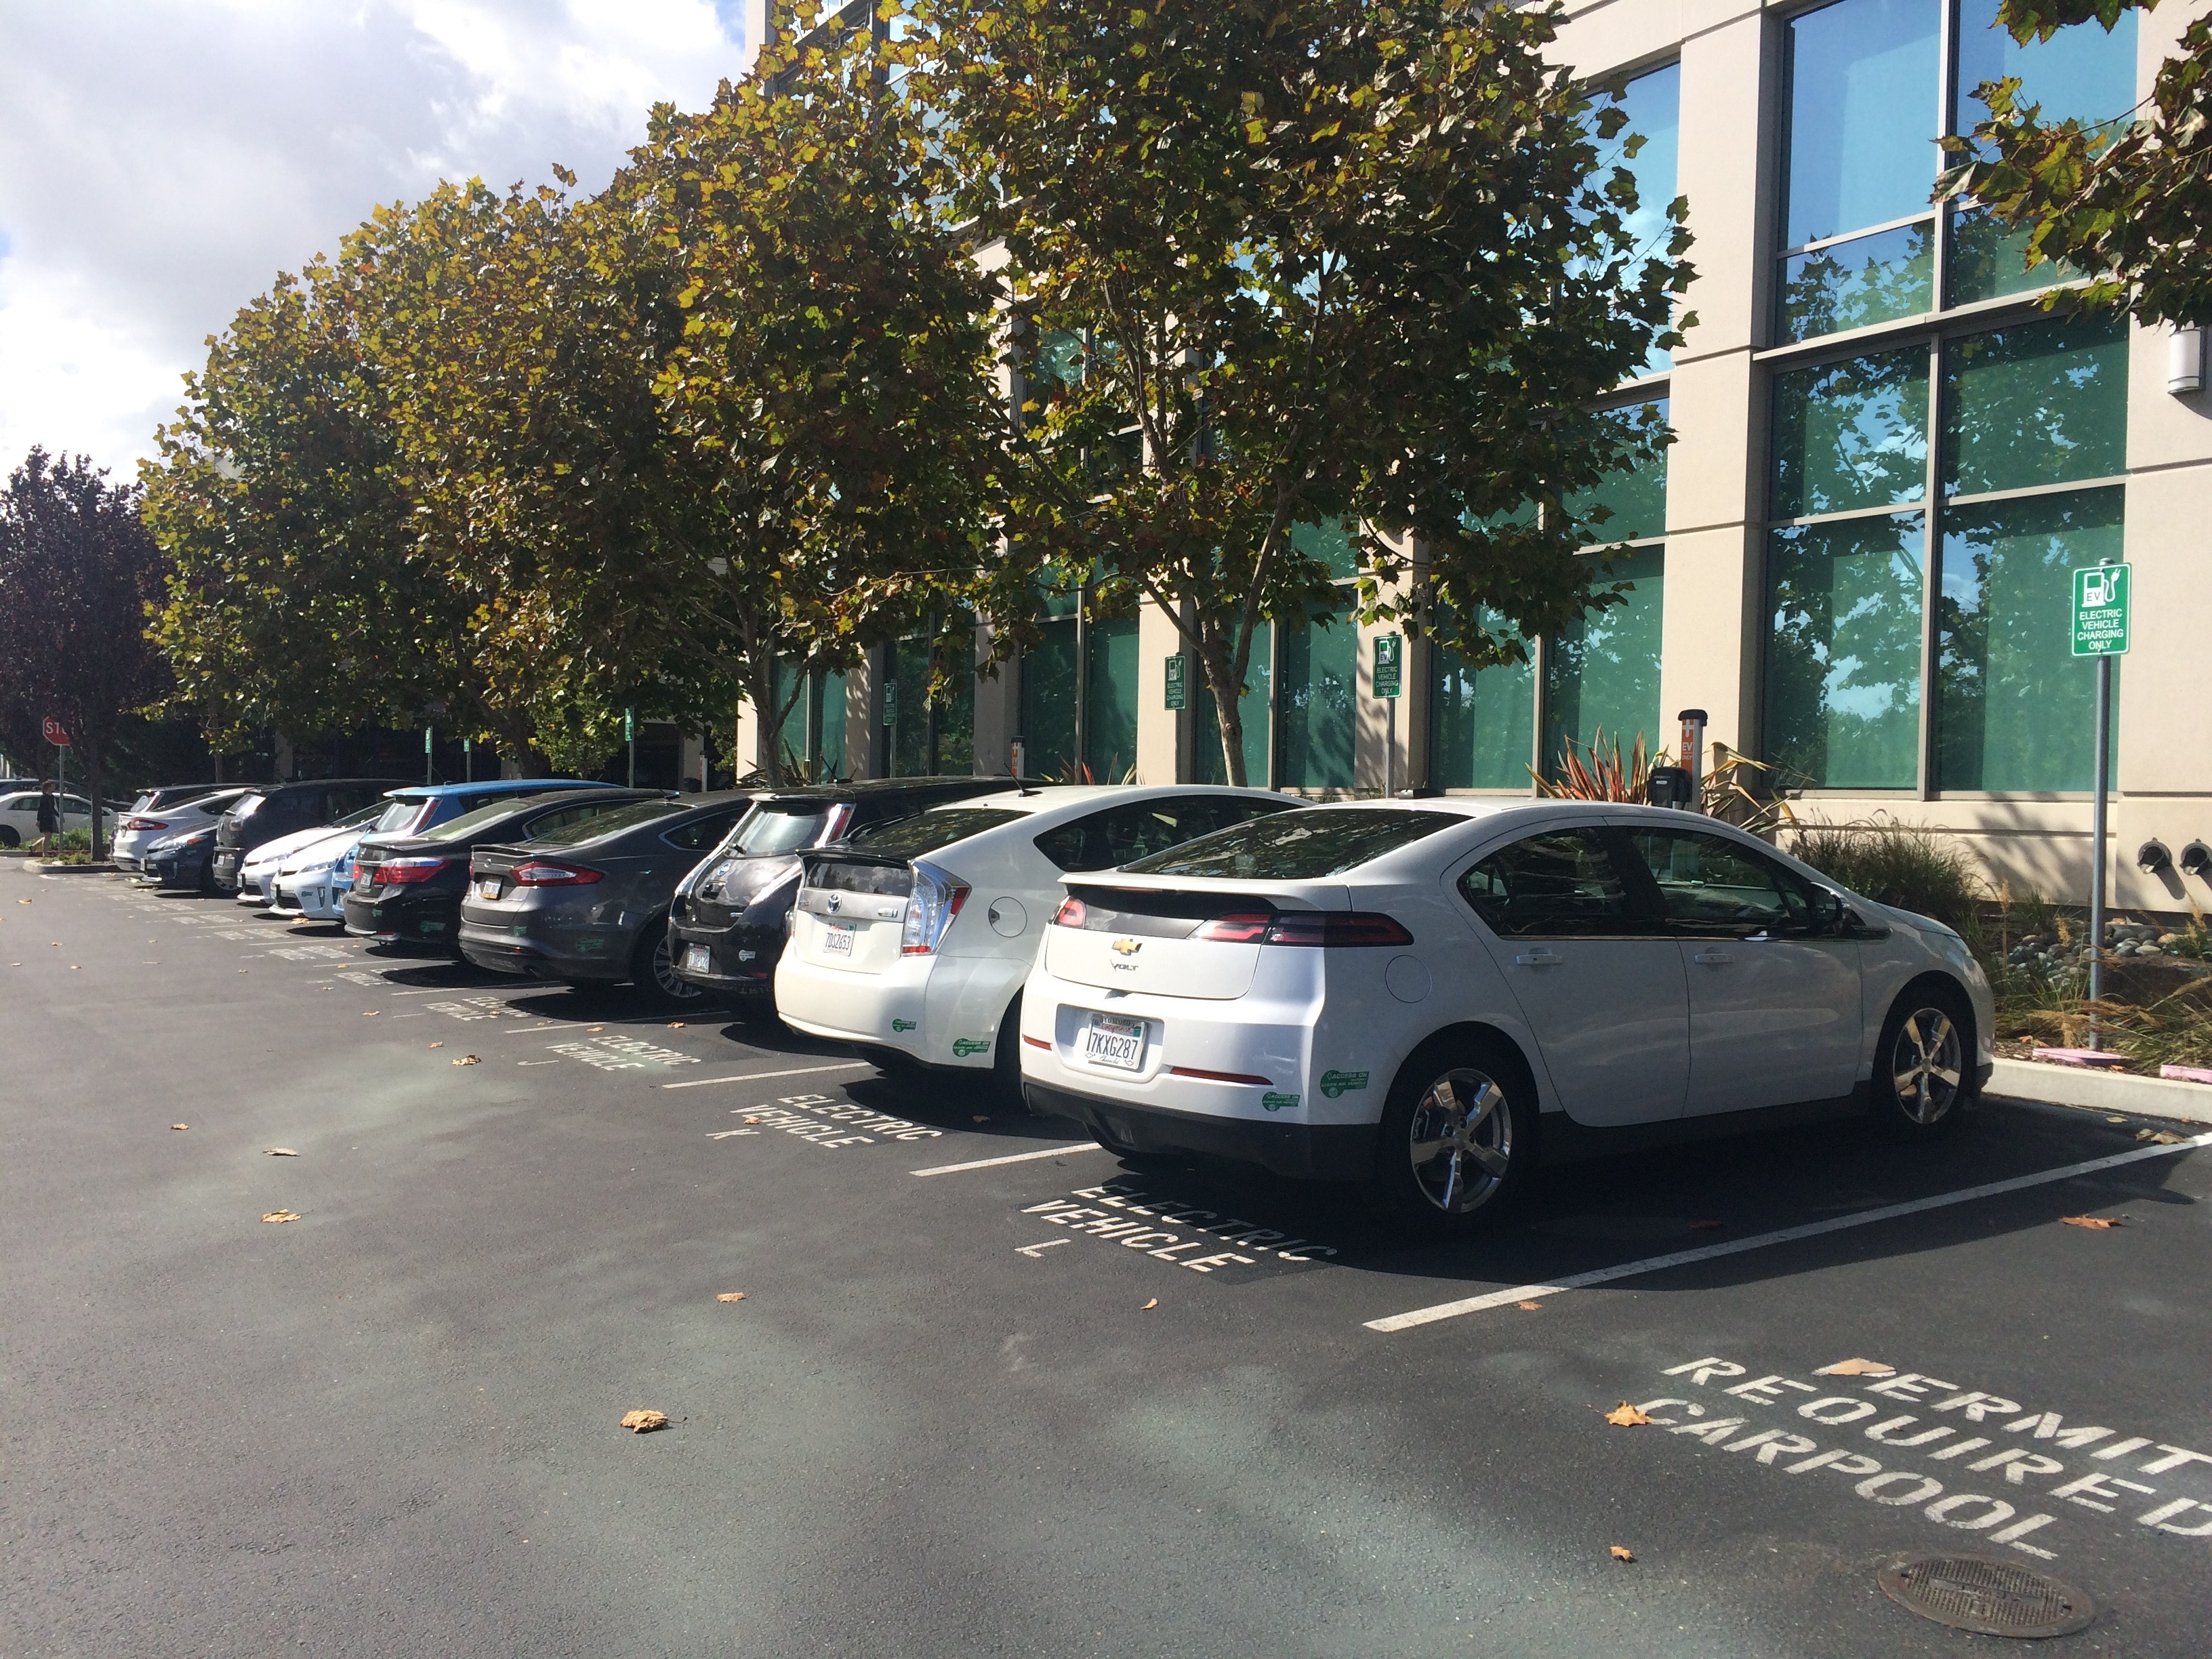 Employee EV parking in Sunnyvale, CA